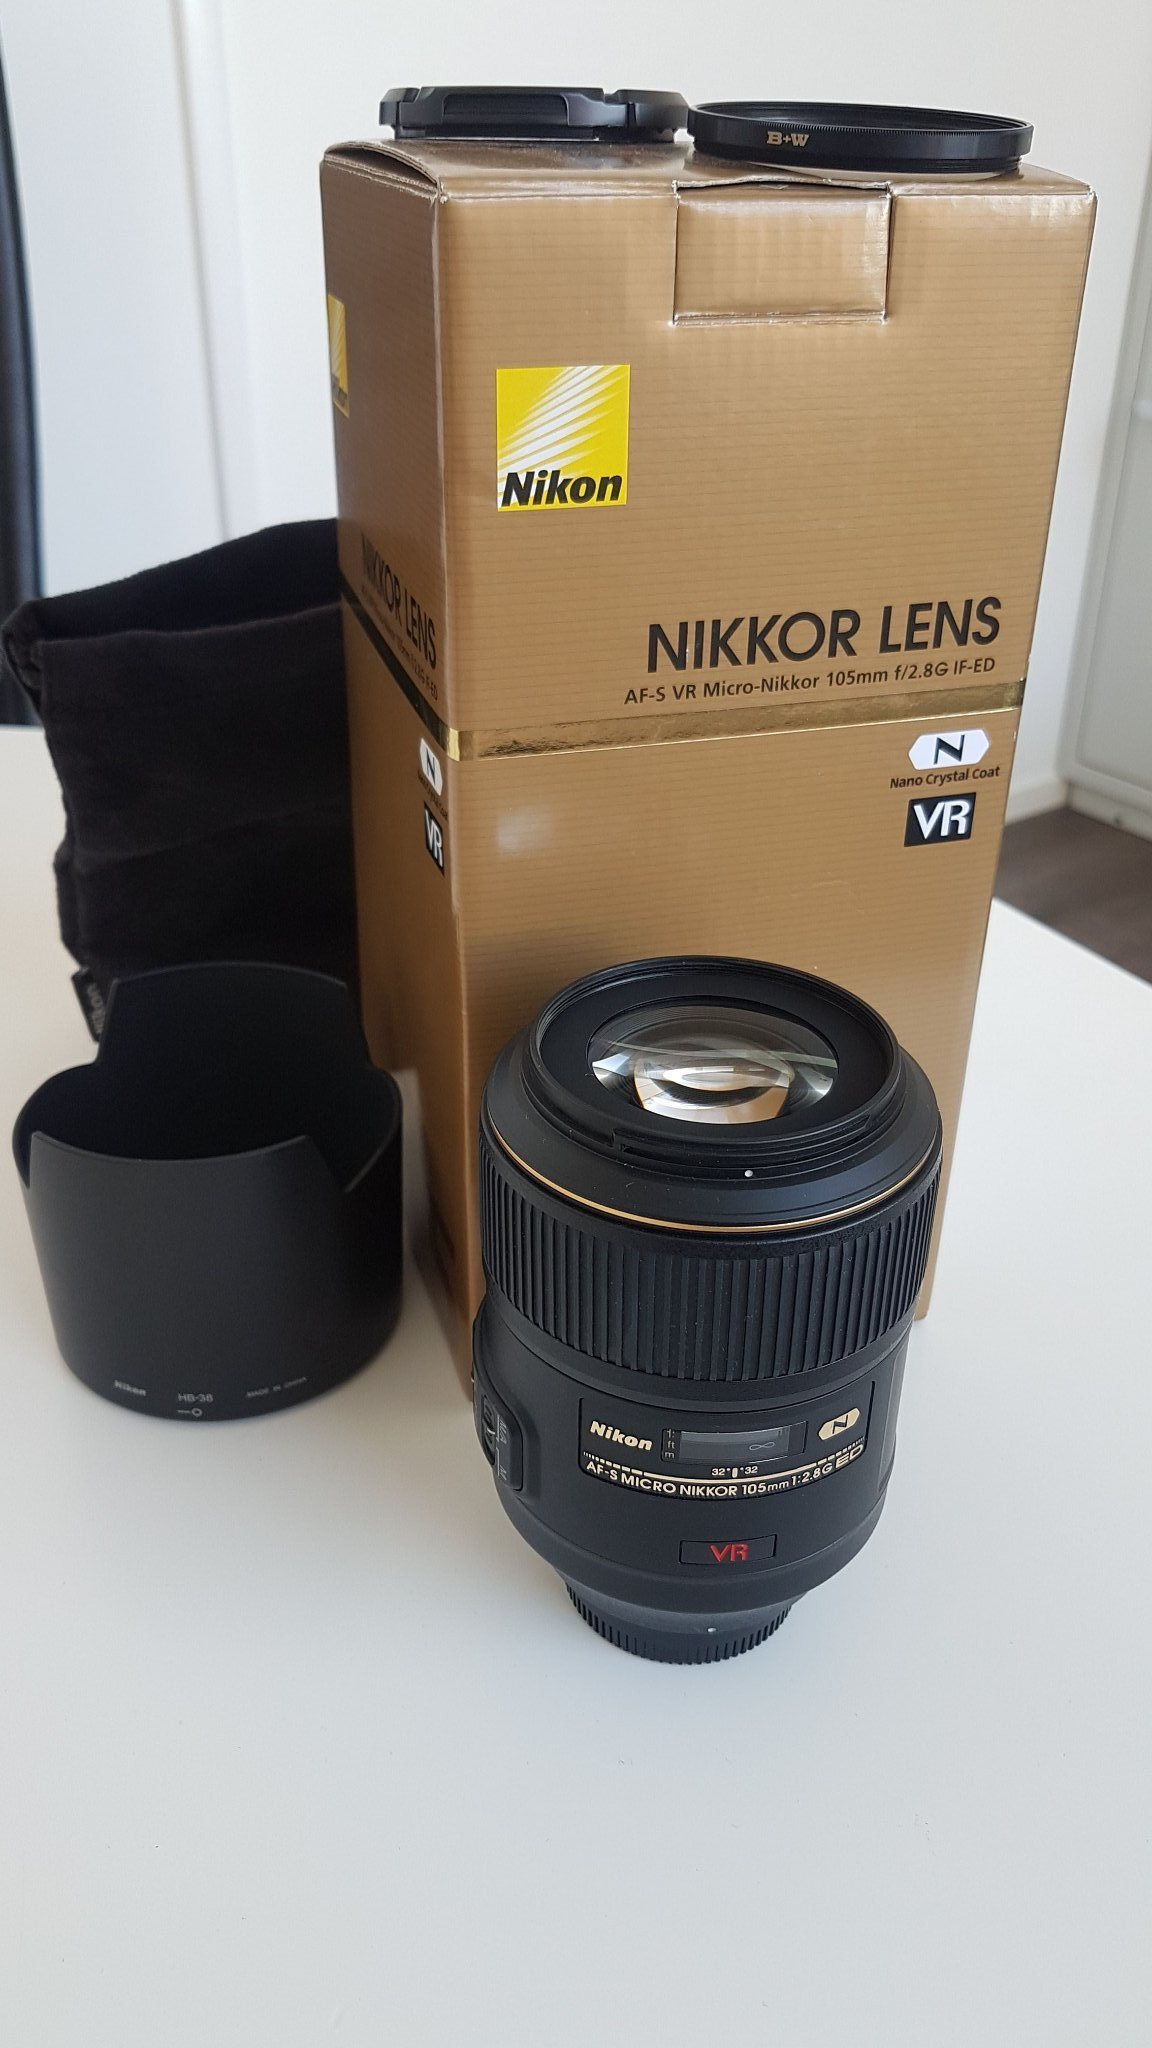 Nikon 105mm VR Micro Nikkor 2.8G IF-ED